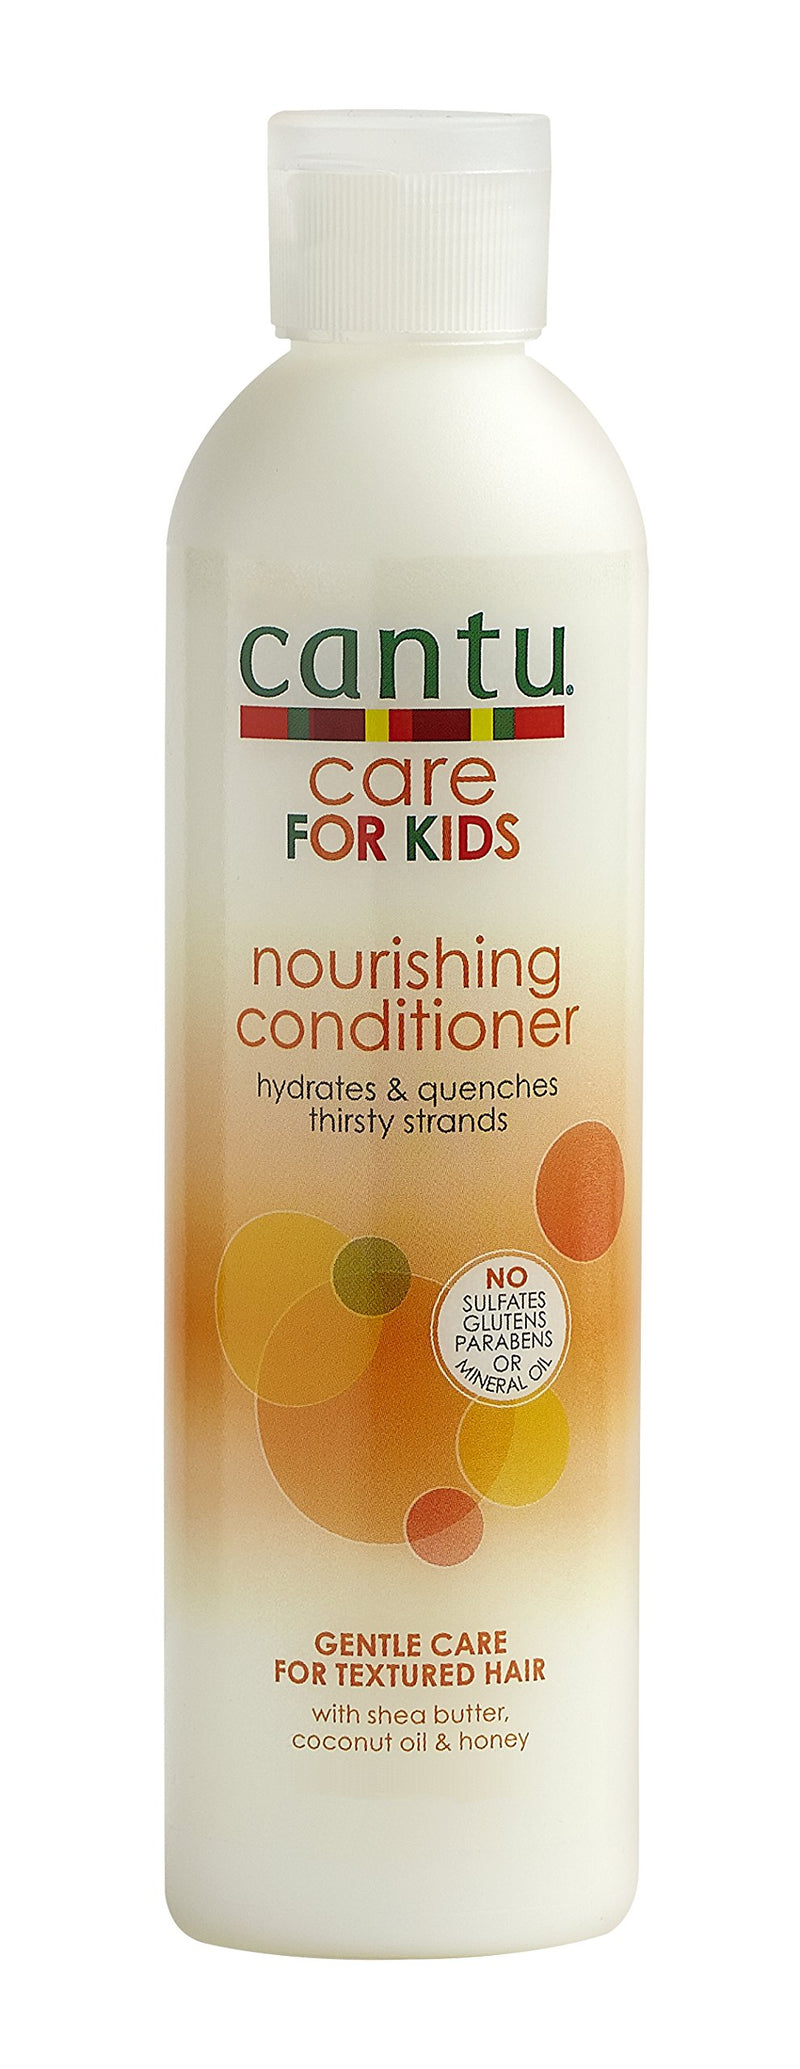 Cantu Care for Kids Nourishing Conditioner, 227 g